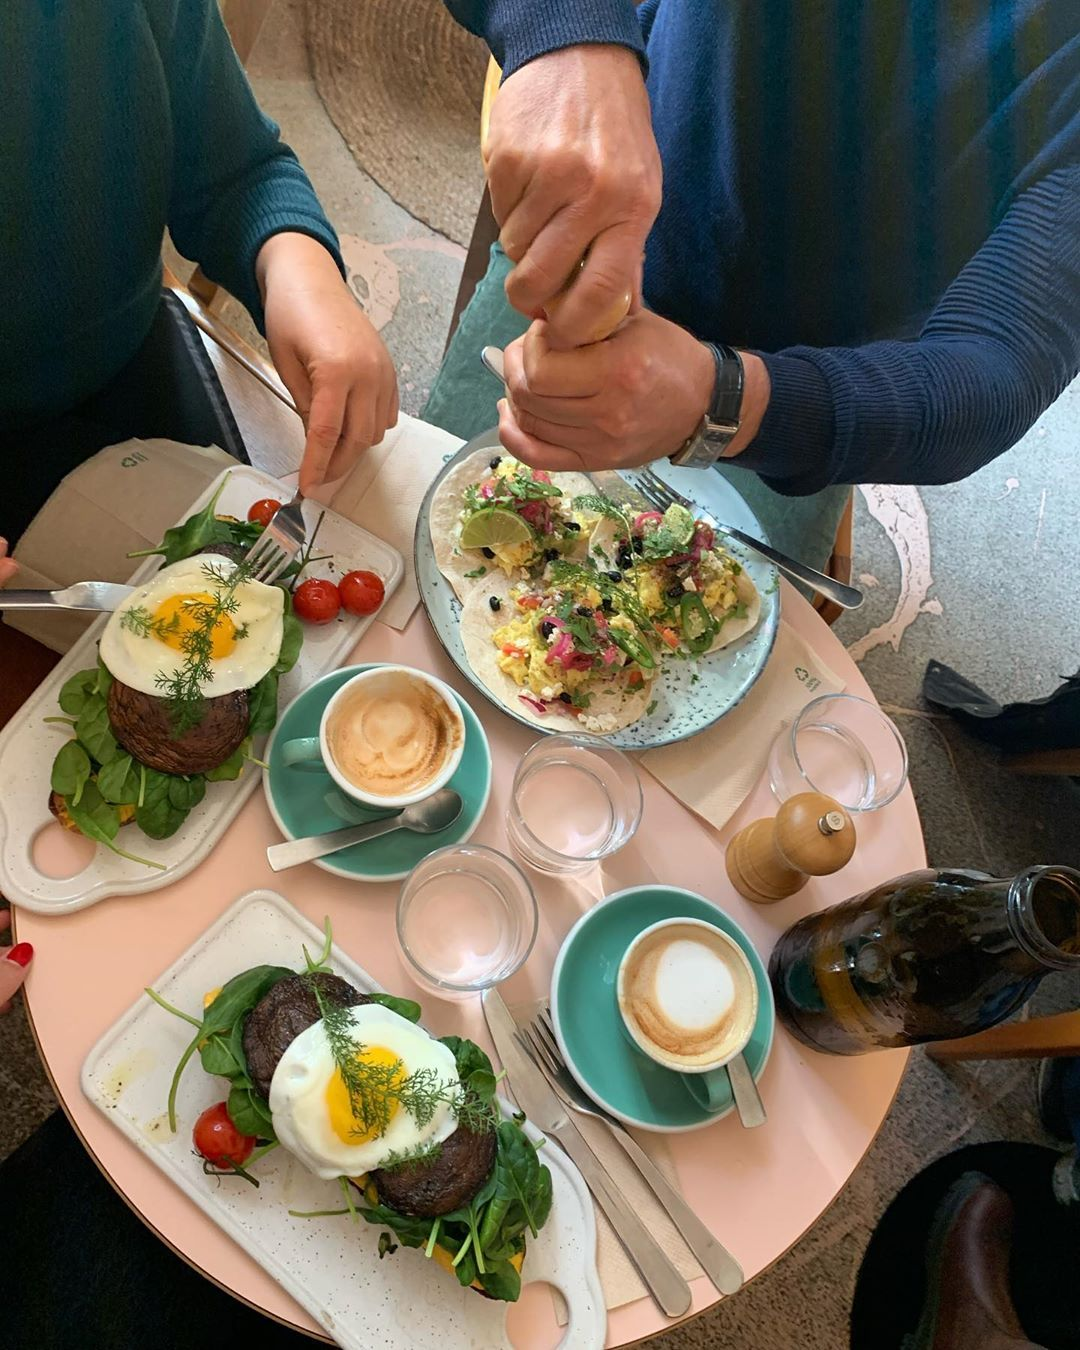 Quality time with family and friends  #family #friends #food #qualitytime #vienna #breakfastQuality time with family and friends  #family #friends #food #qualitytime #vienna #breakfast